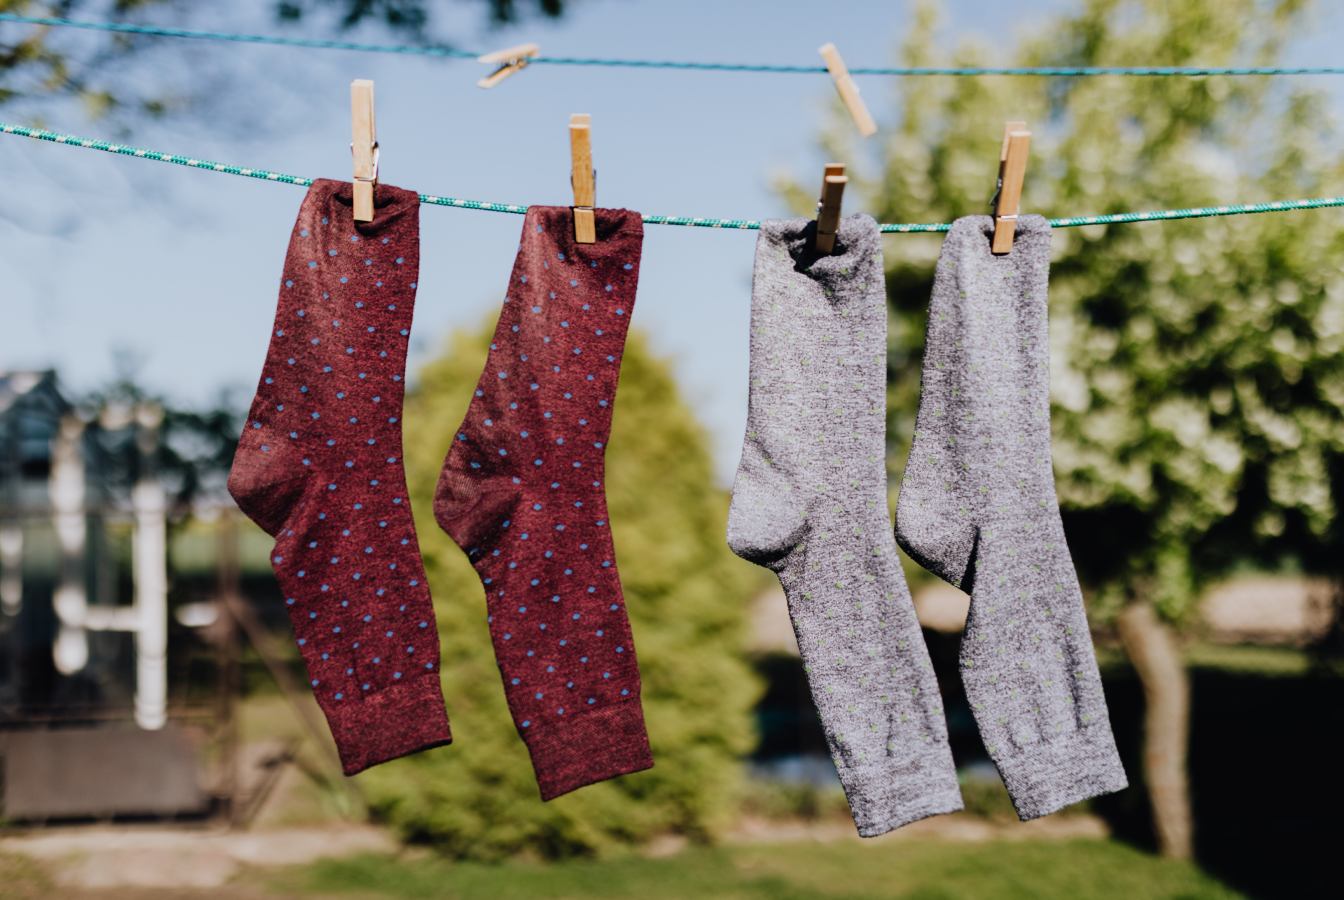 Two pairs of socks on laundy line